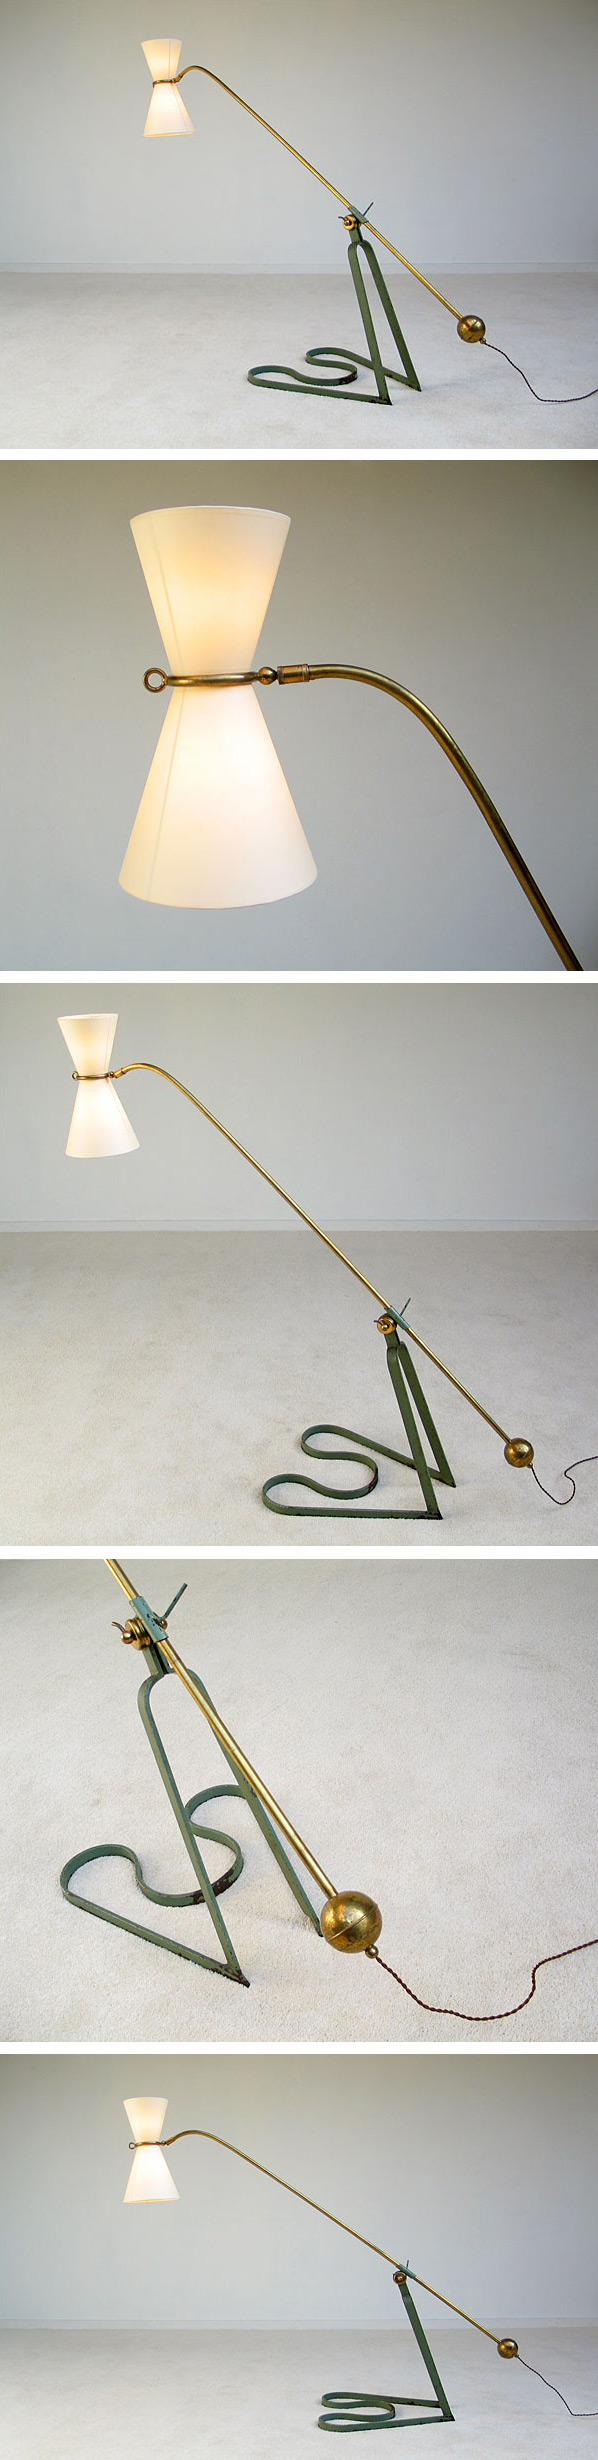 Equilibrium floor lamp Pierre Guariche 1951 Large